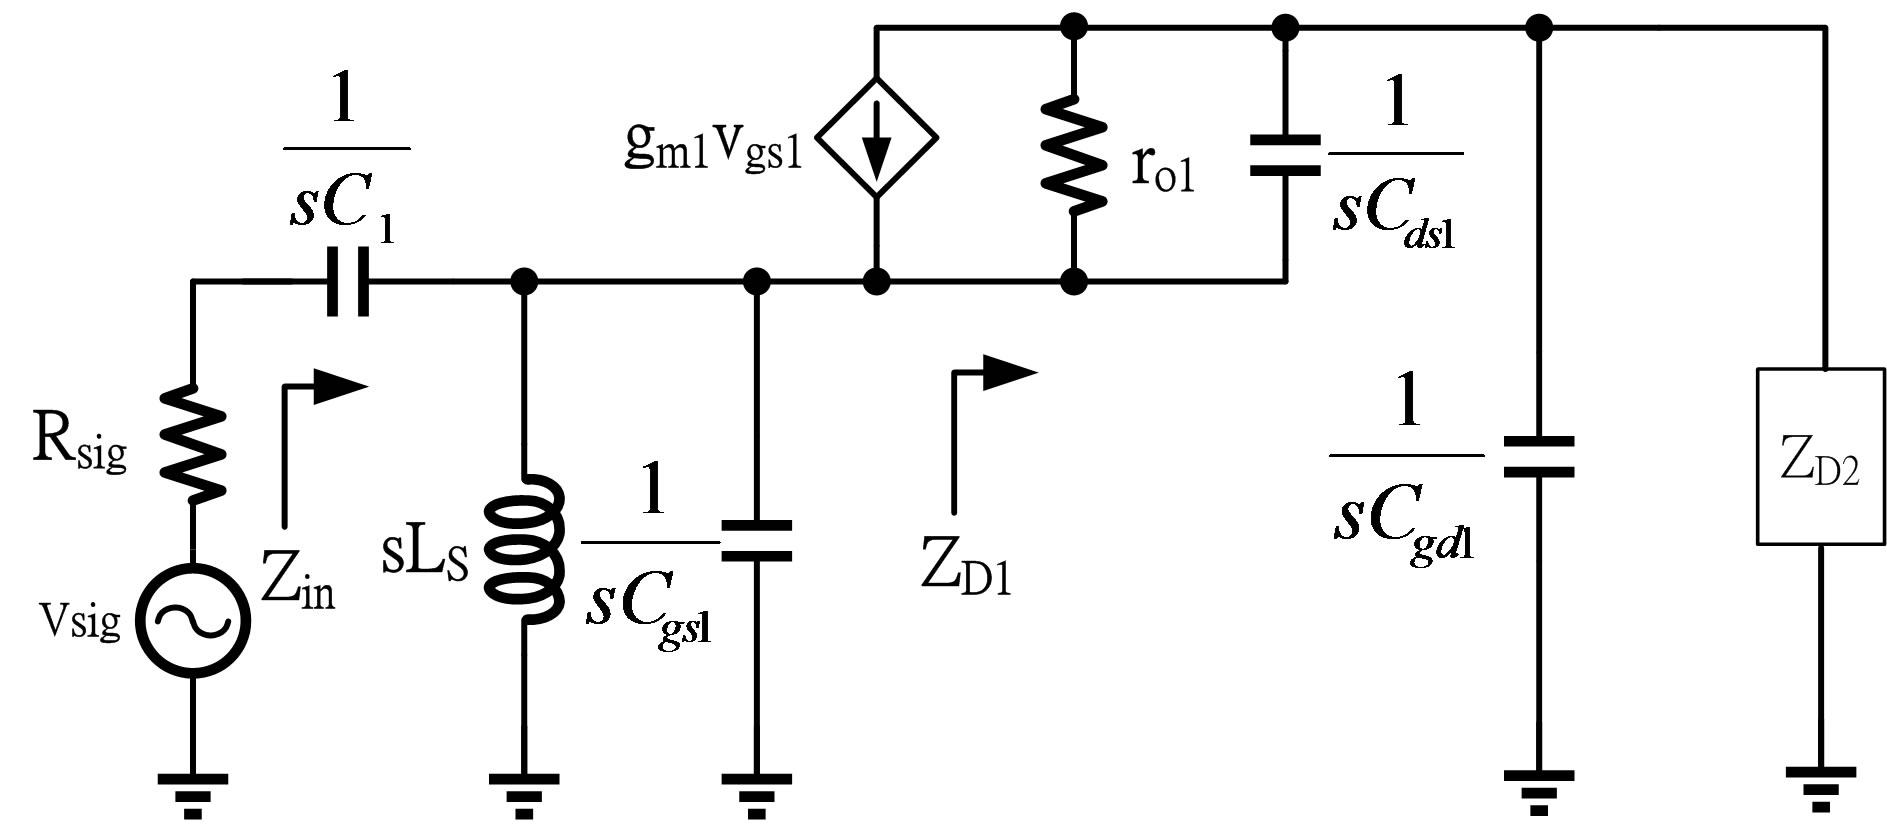 Design Of Low Power Cmos Lna With Current Reused And Notch